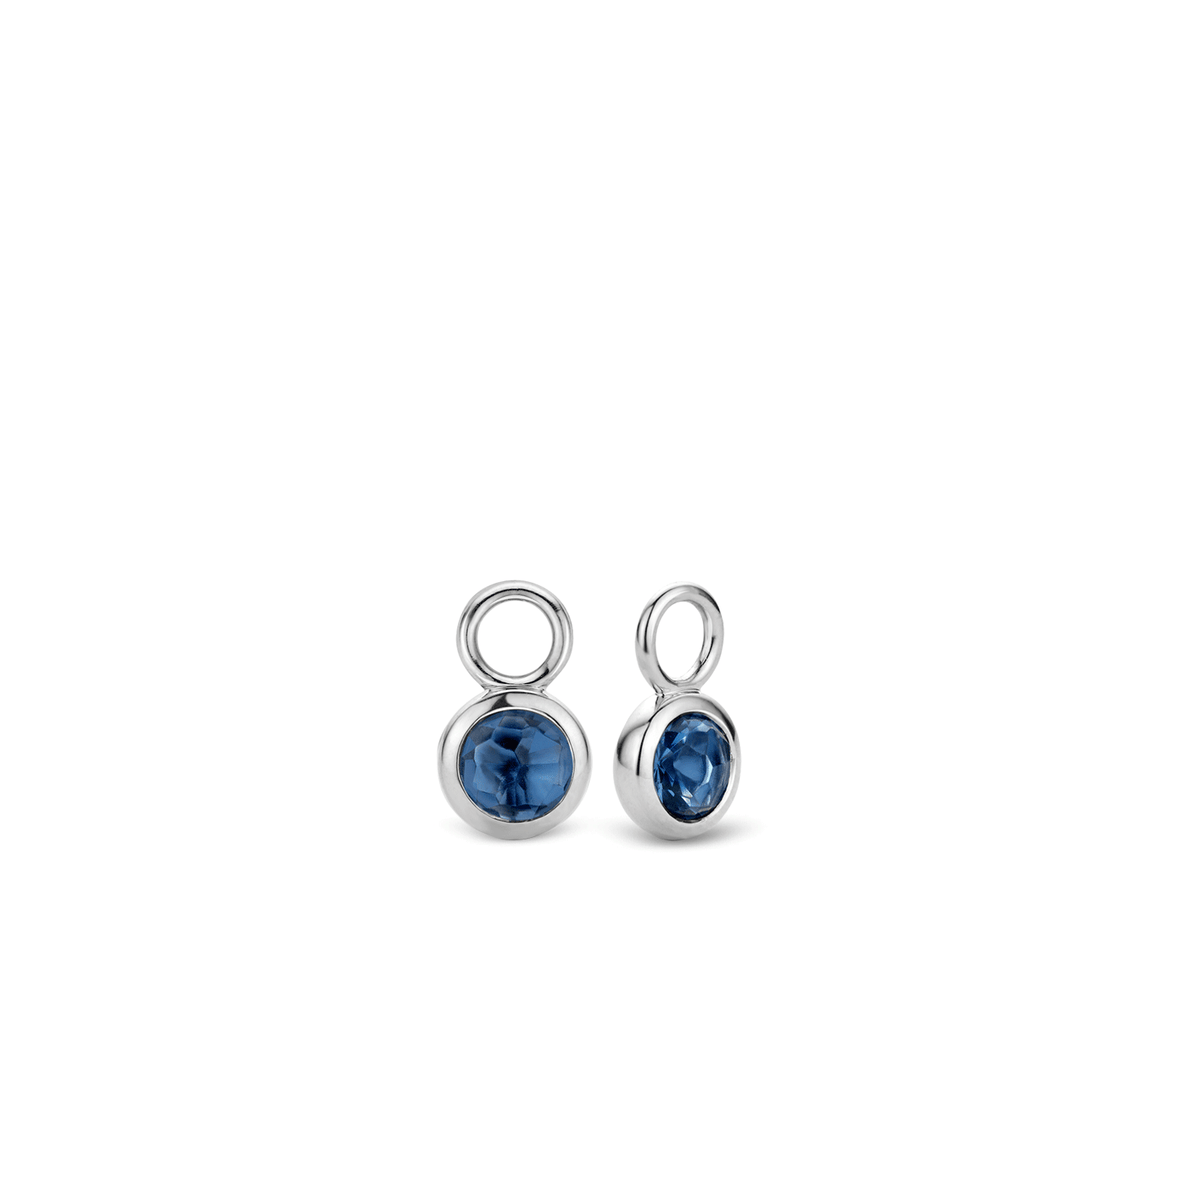 TI SENTO - Milano Ear Charms 9180DB